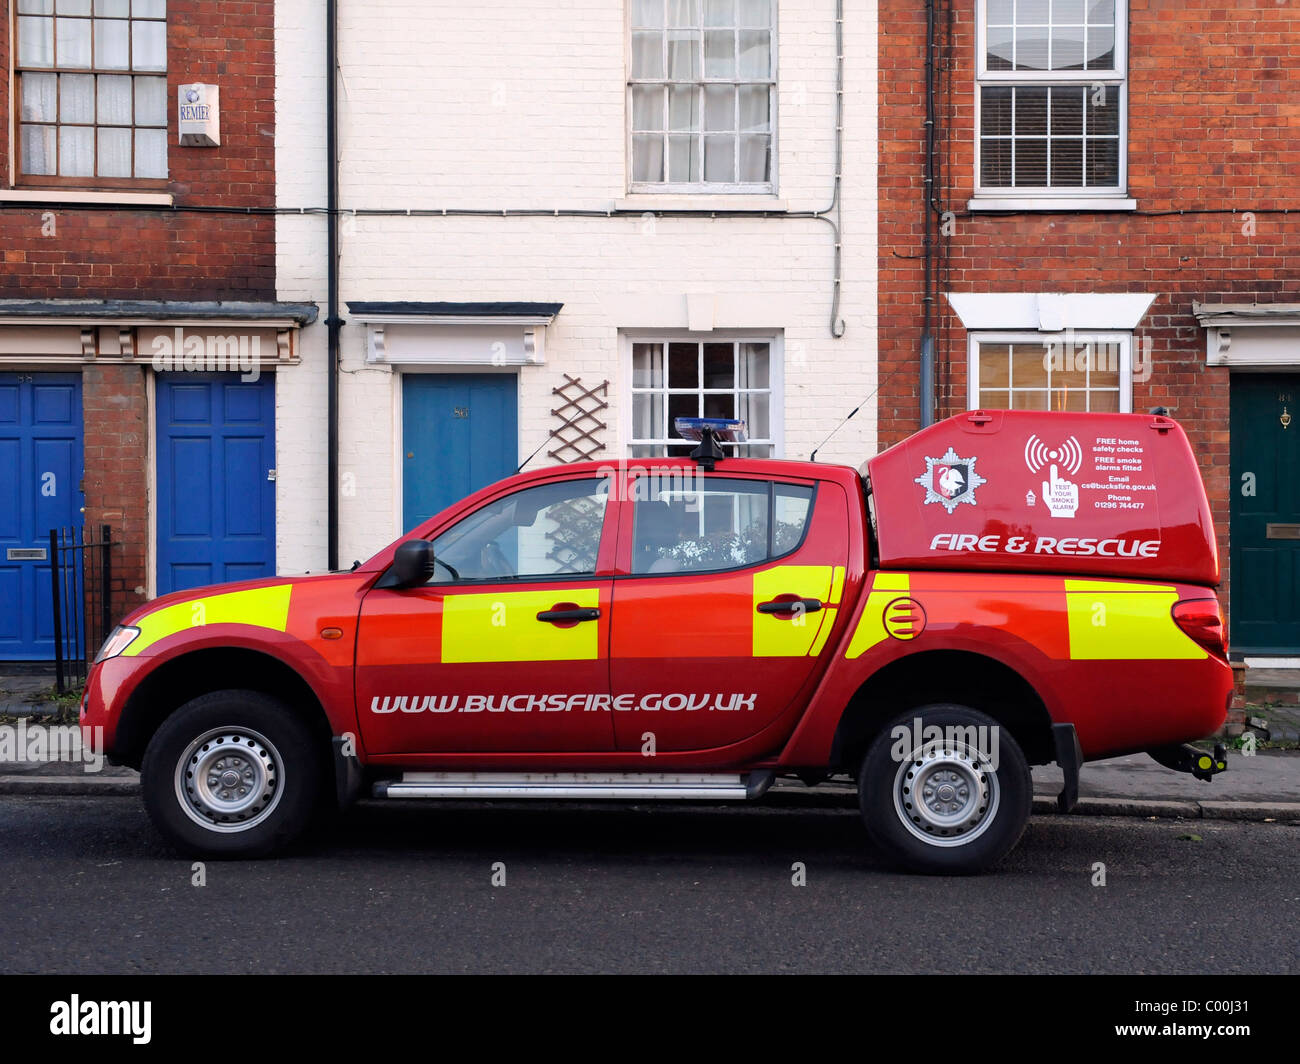 A fire safety vehicle promoting fire safety check. - Stock Image